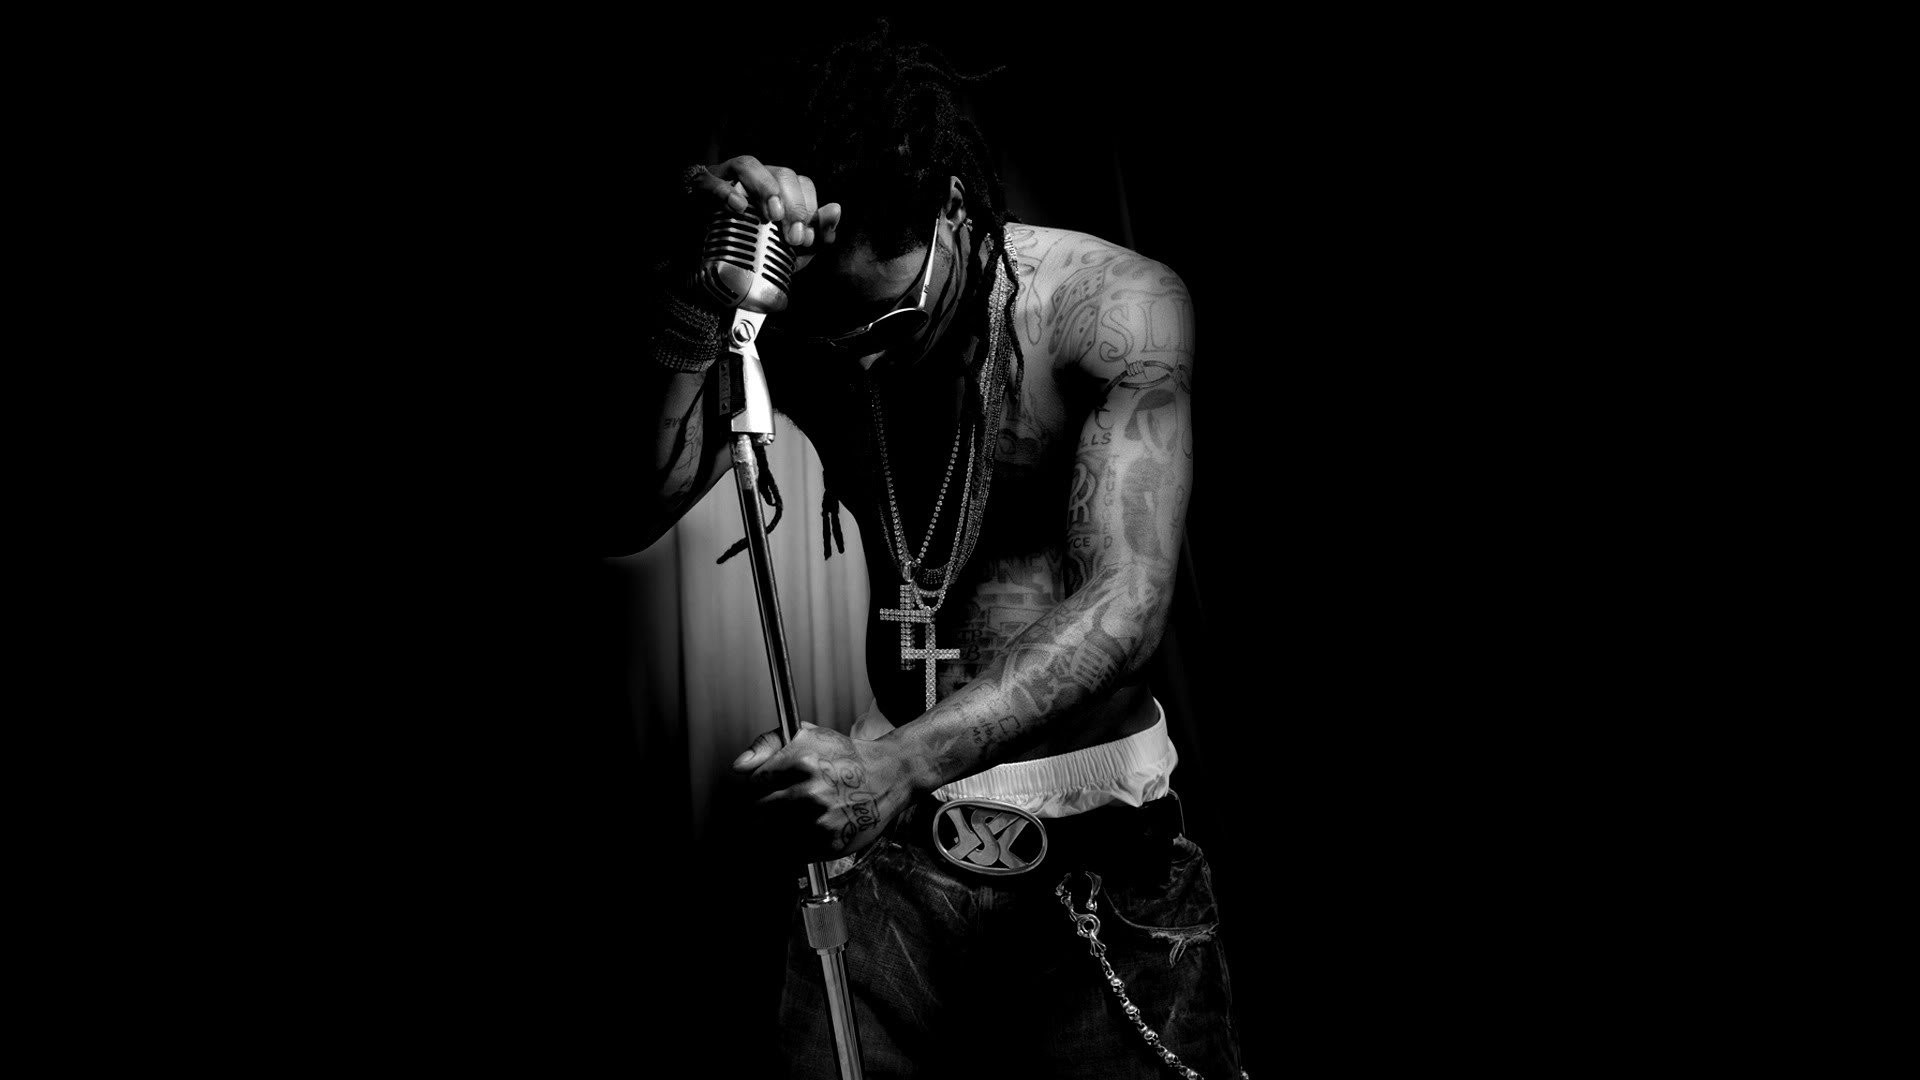 1920x1080 the game rapper wallpaper iphone - photo #49. Lil Wayne 2011 Wallpaper